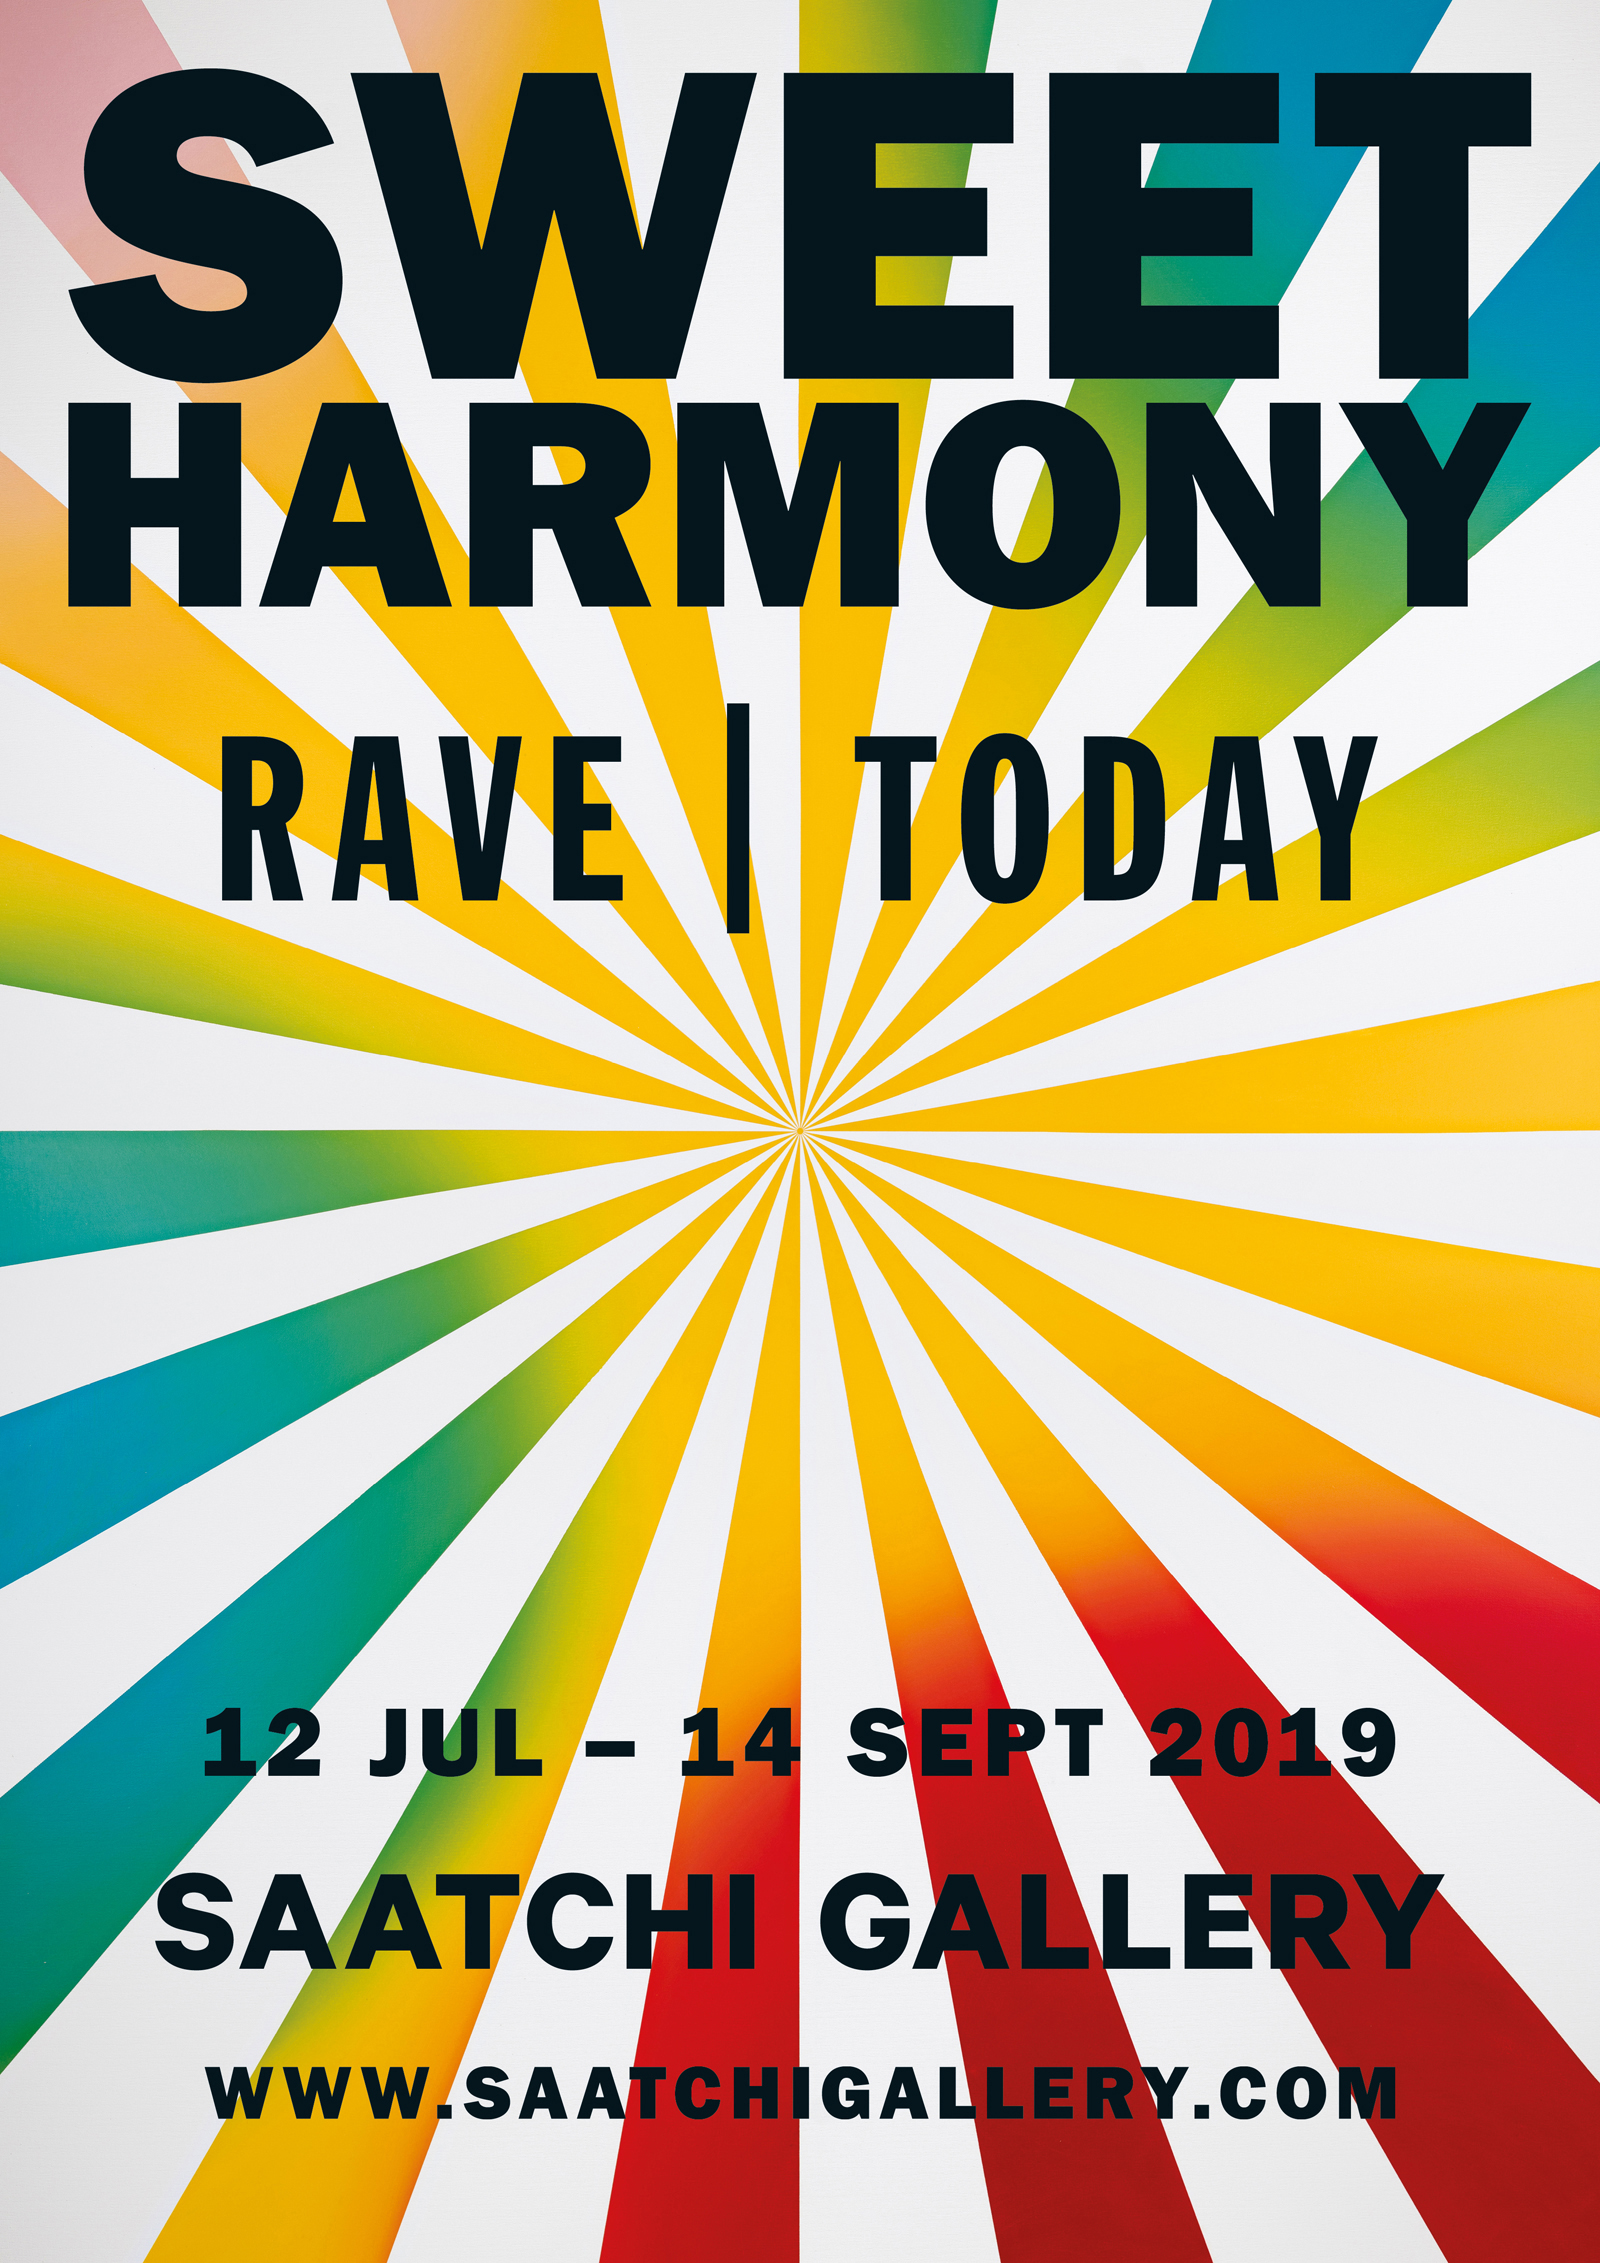 Sweet-Harmony-Saatchi-Gallery-Rave-Today-Poster-Pavement-Licker.jpg